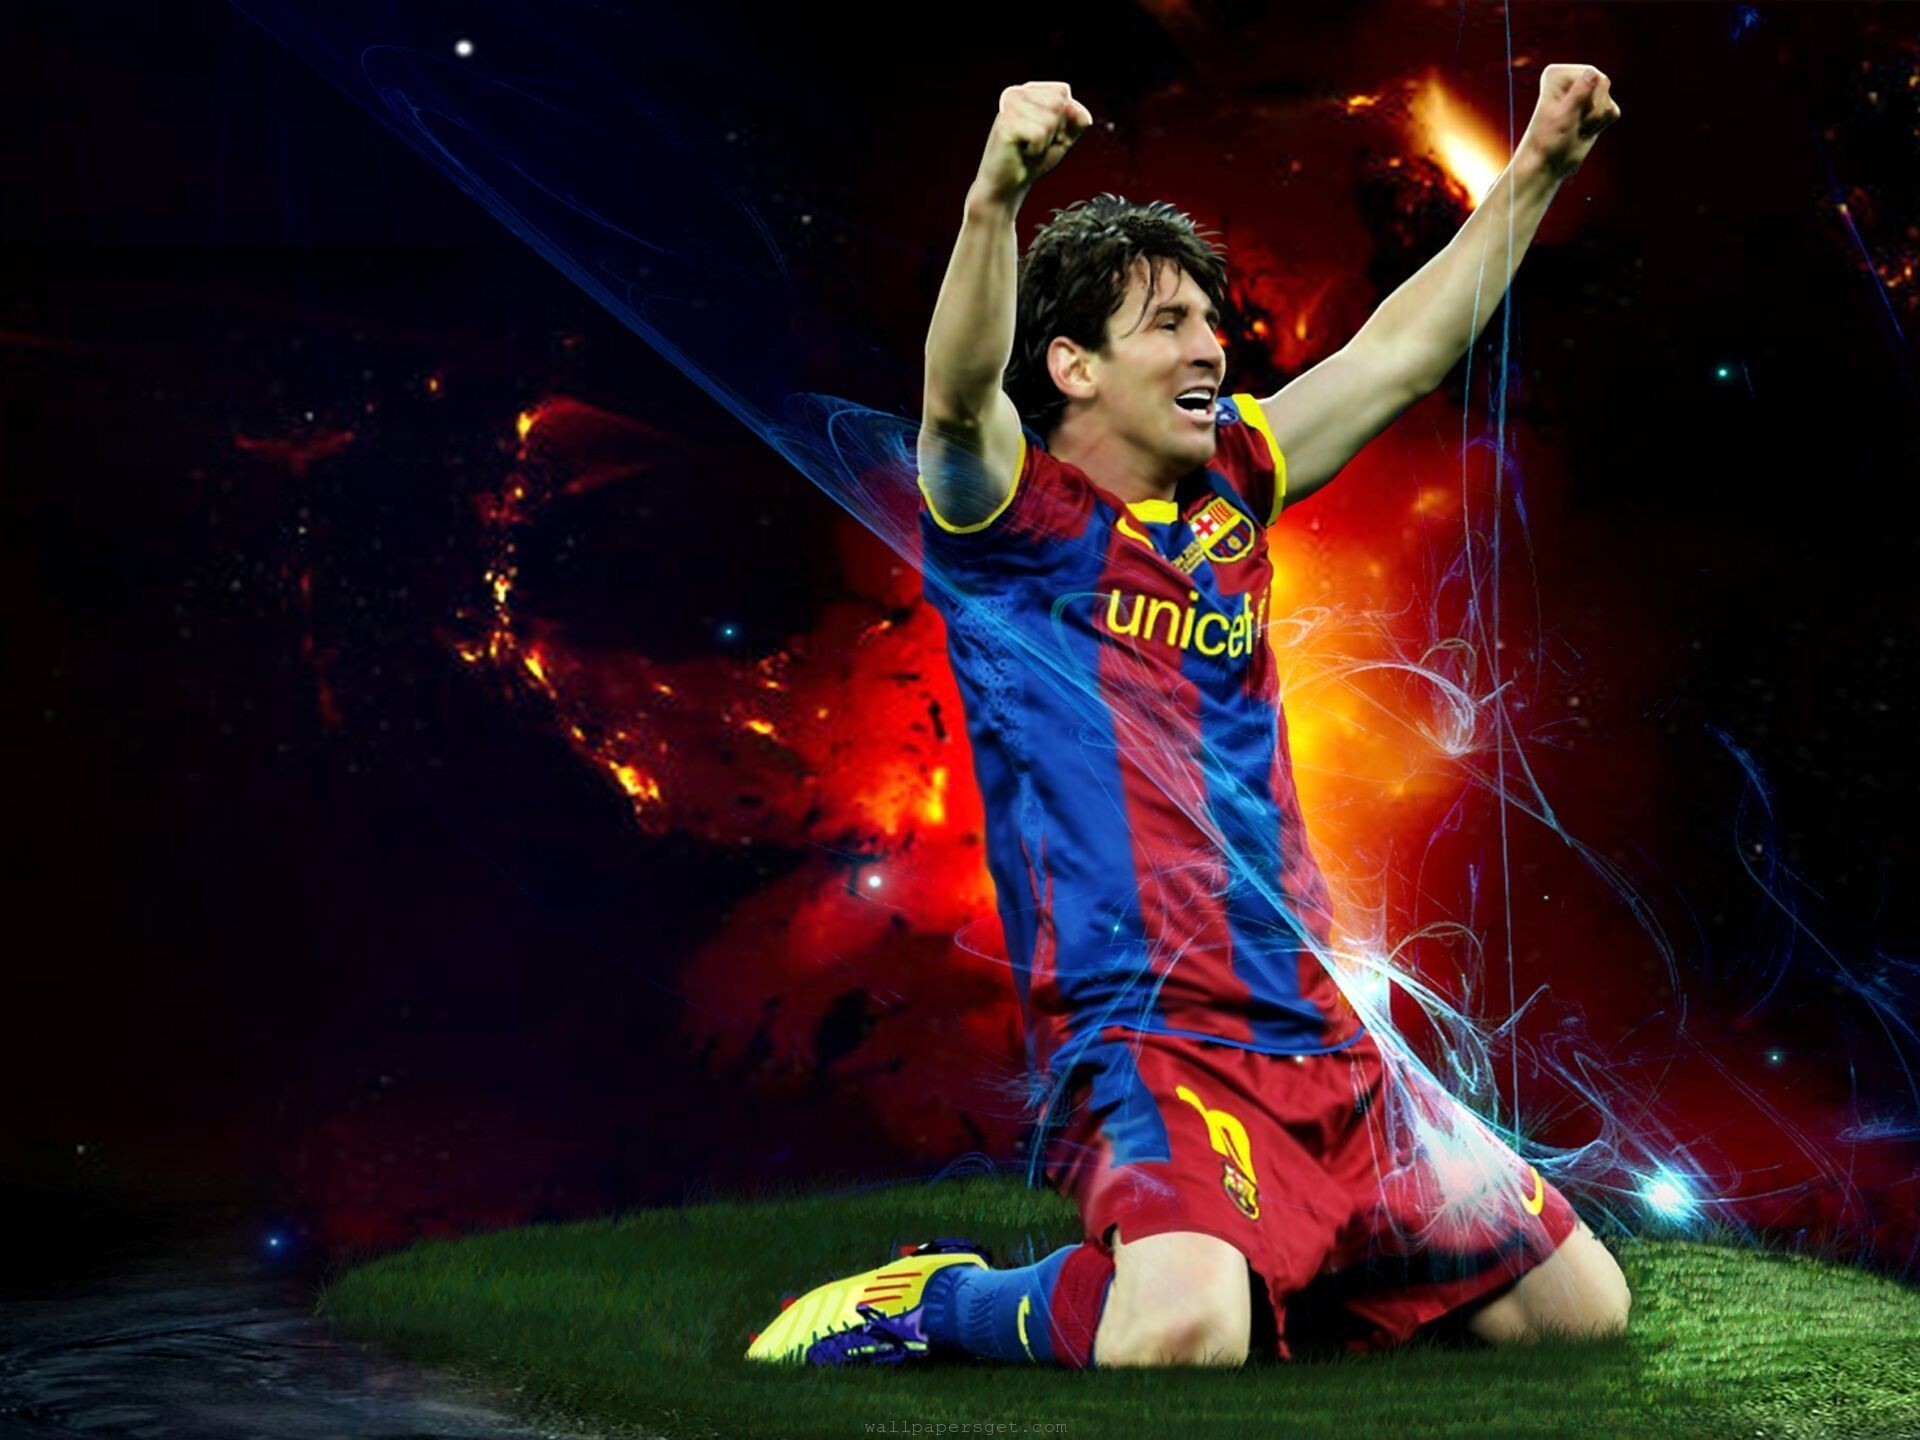 lionel messi argentina football player wallpapers hd